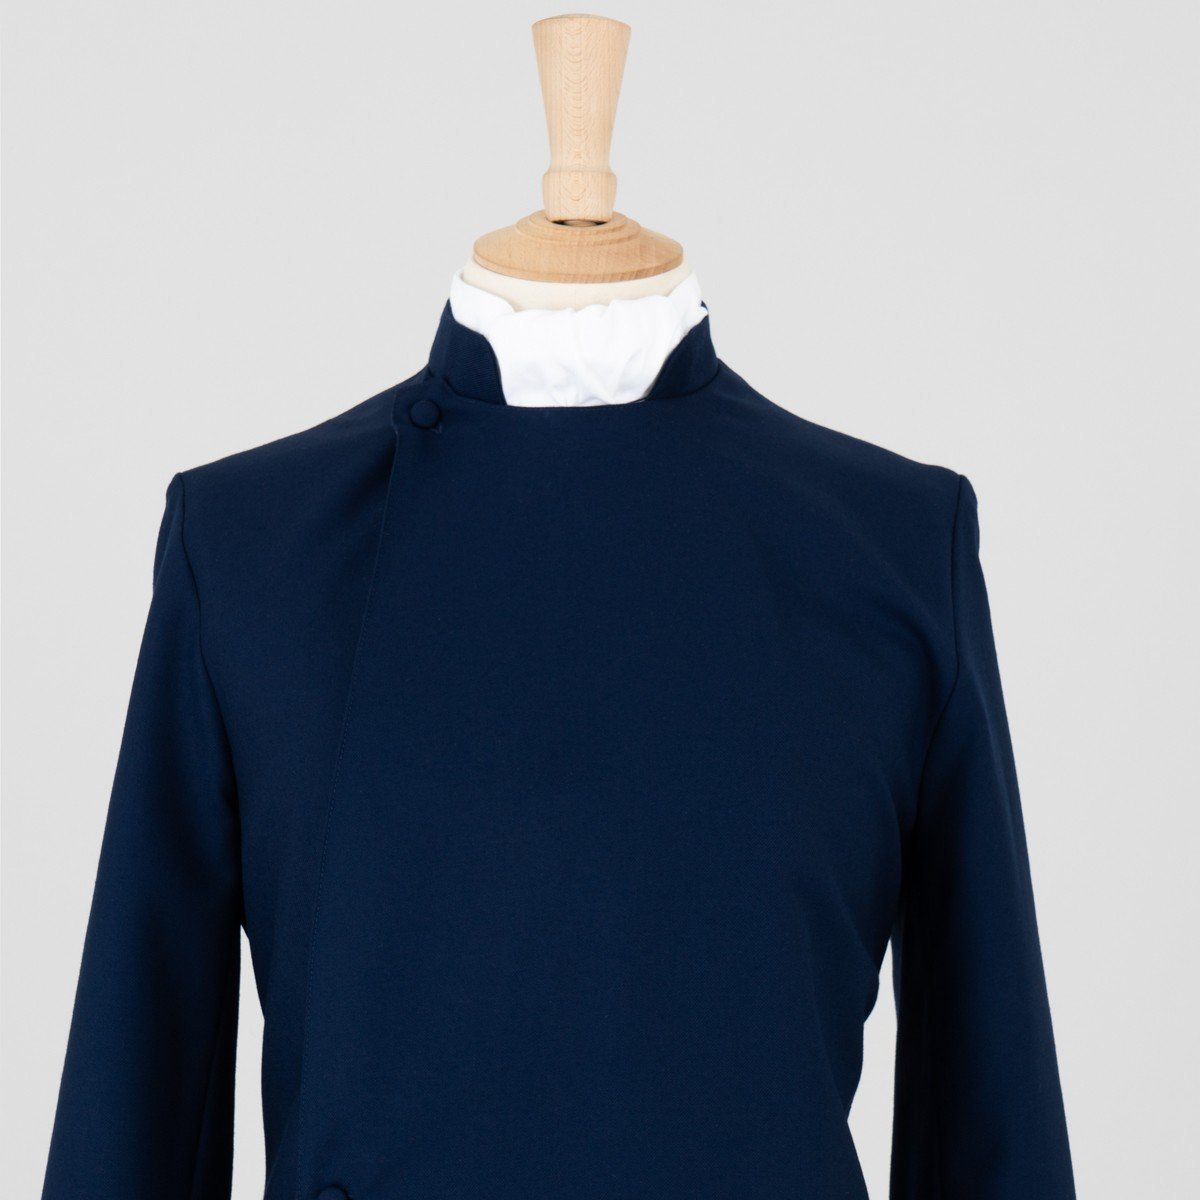 Men's Pure Wool Double Breasted Choir Cassock - Watts & Co. (international)